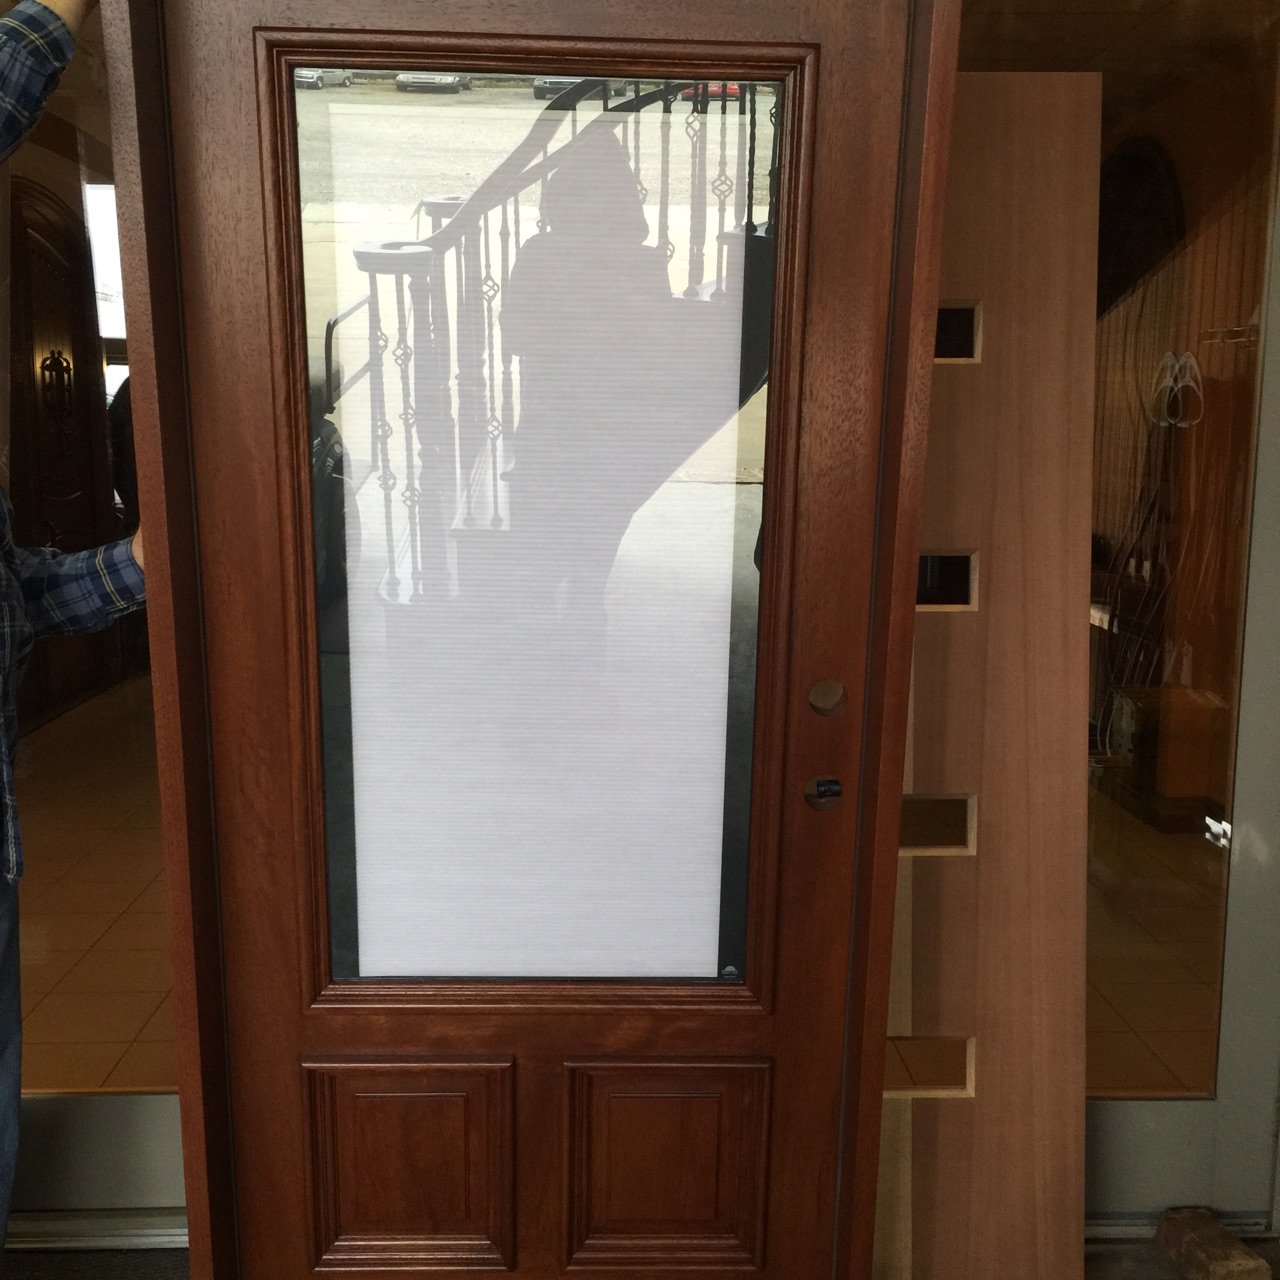 Wood Exterior Doors With Blinds Between The Glass Nicksbuilding